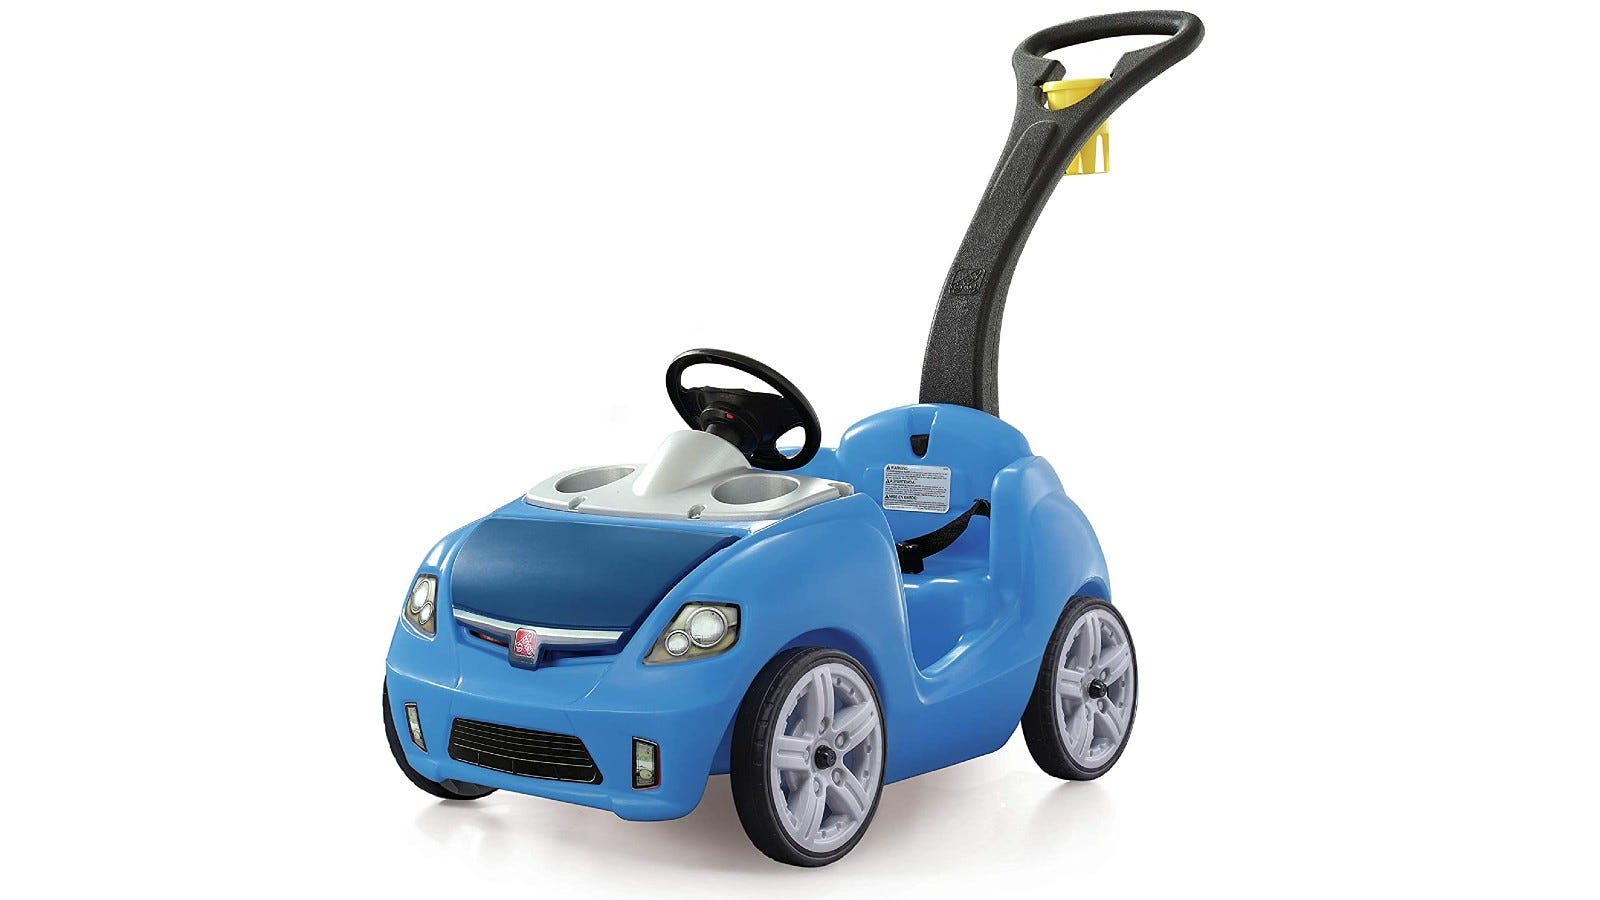 A blue push car for toddlers.